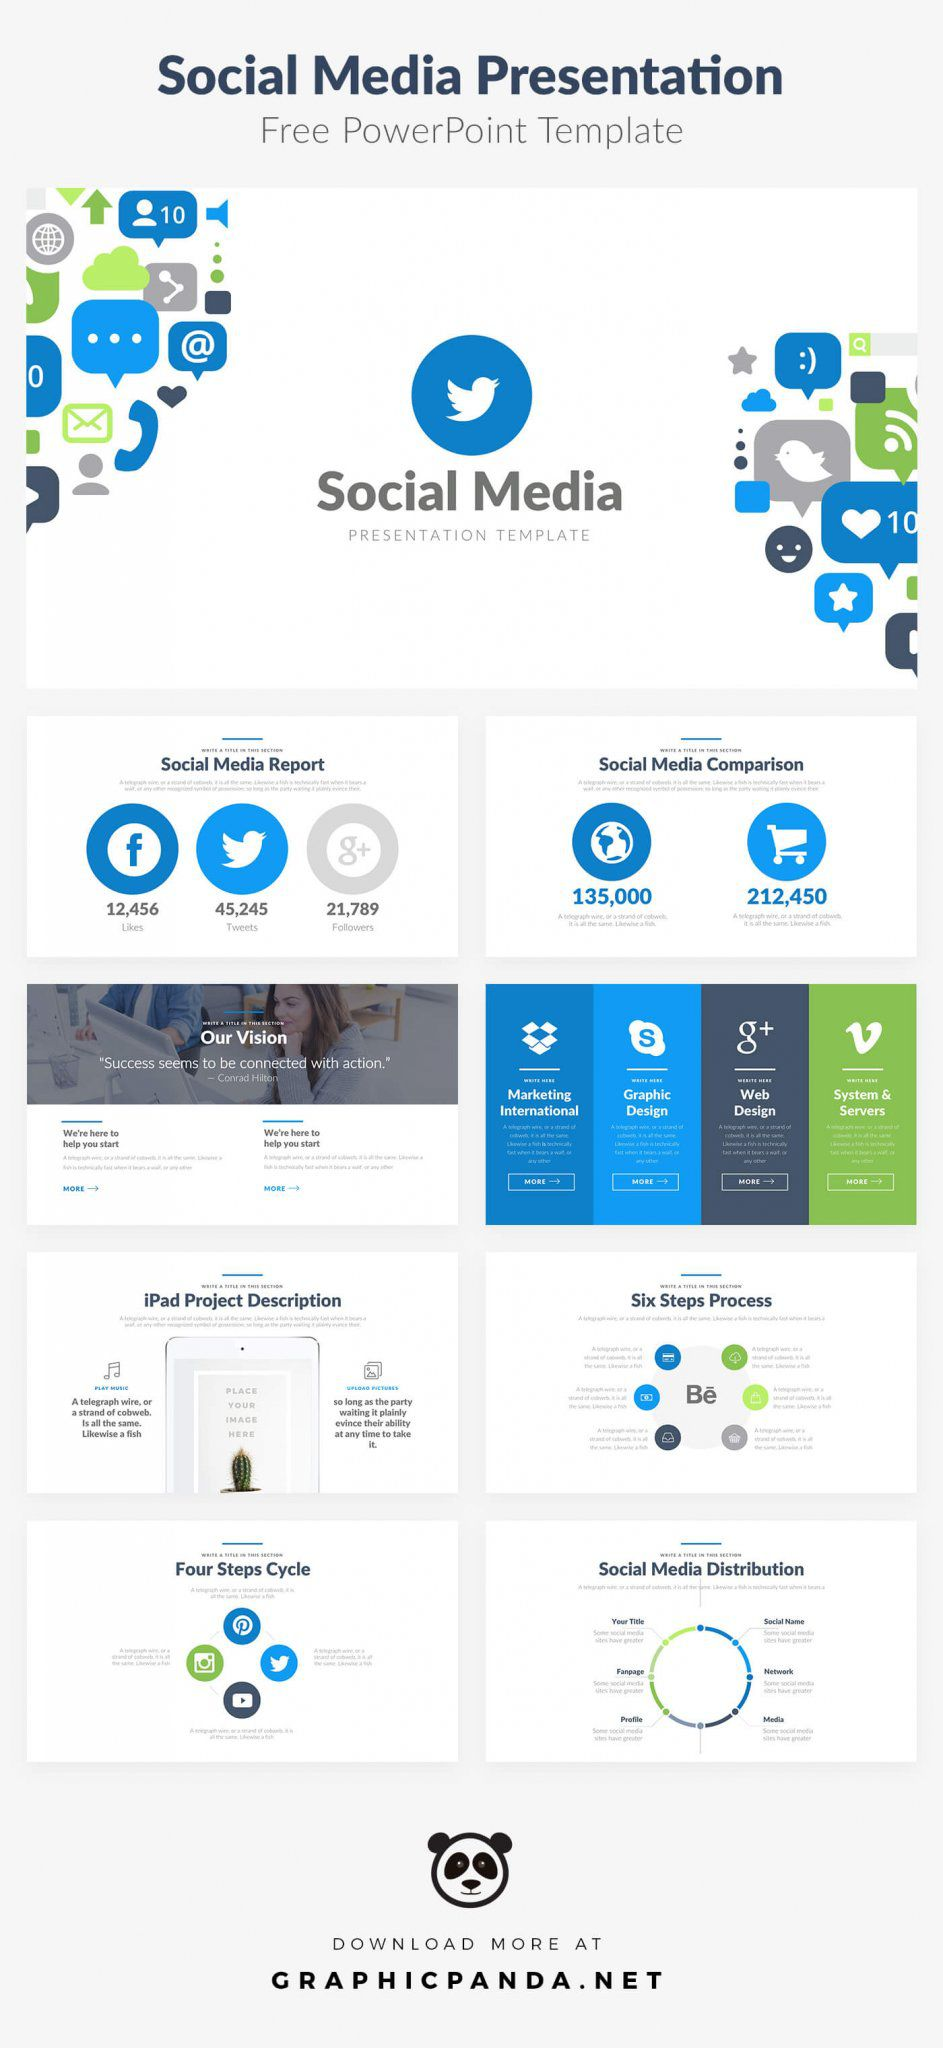 004 Unusual Social Media Powerpoint Template Free Inspiration  Strategy Trend 2017 - ReportFull